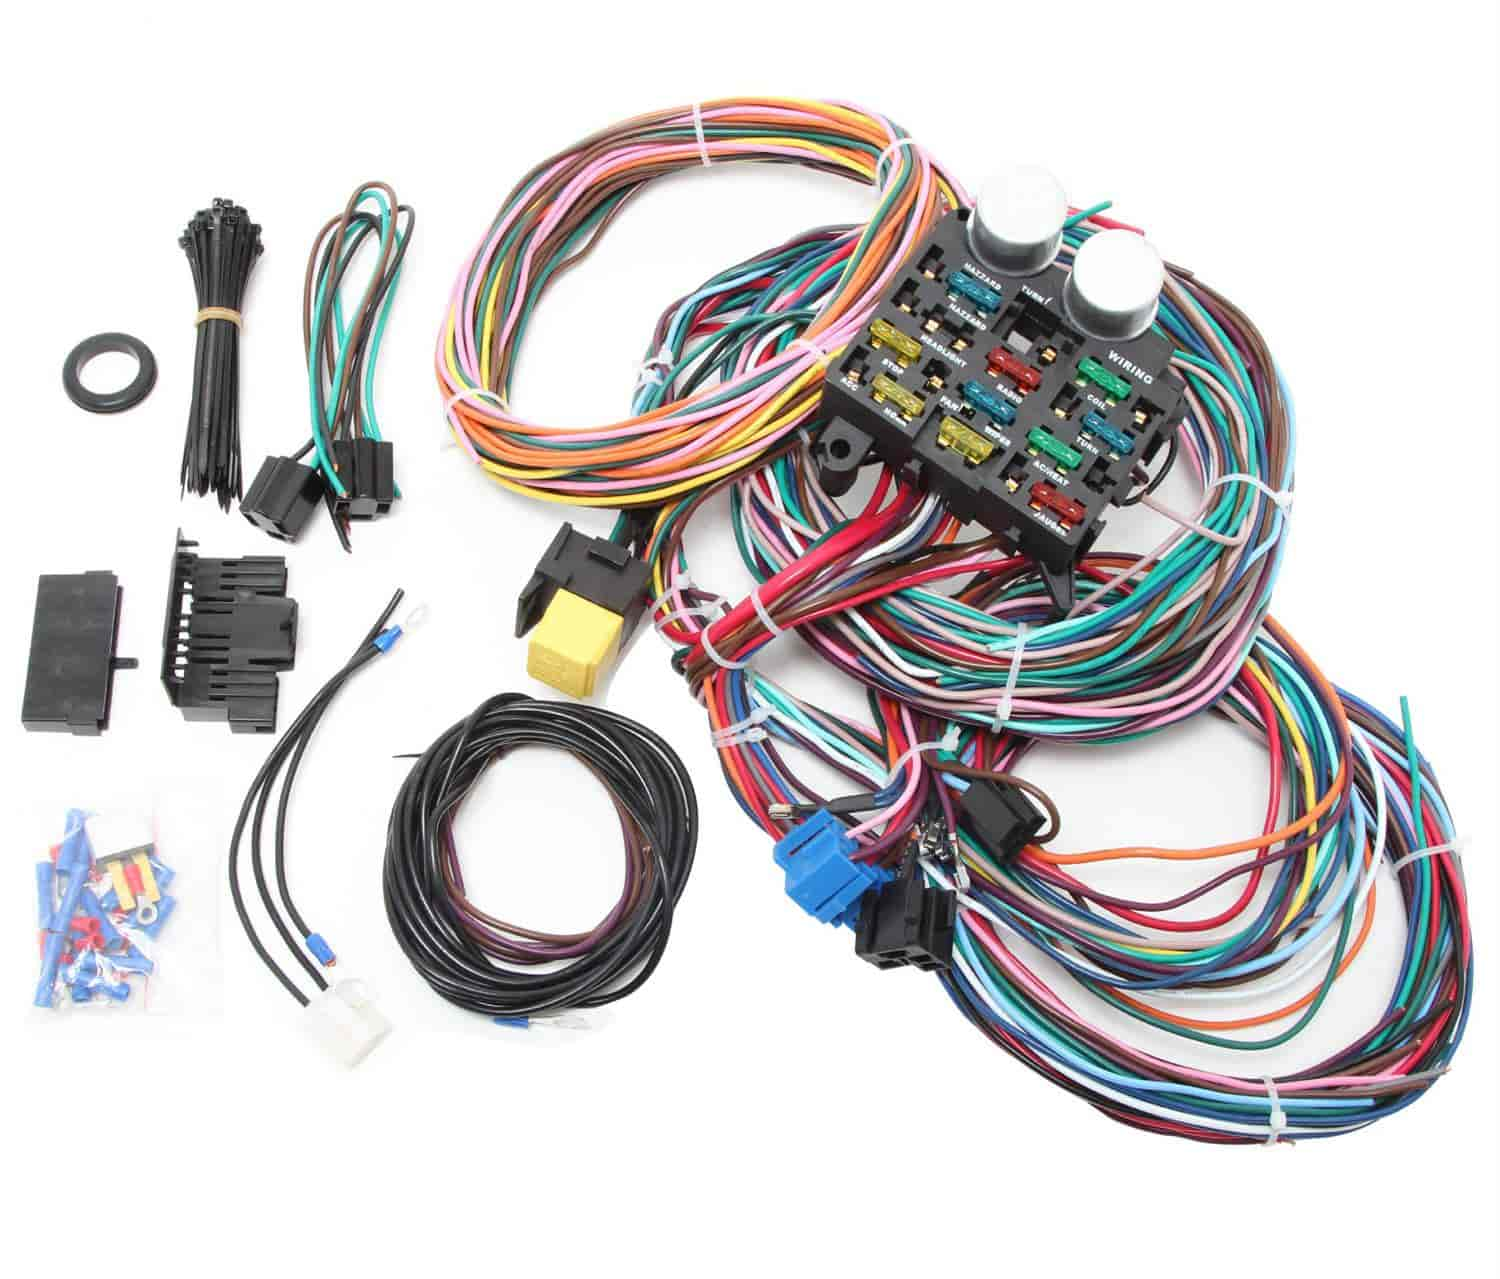 707 r1002x rpc r1002x universal 12 circuit wire harness kit jegs VW Wiring Harness Kits at soozxer.org